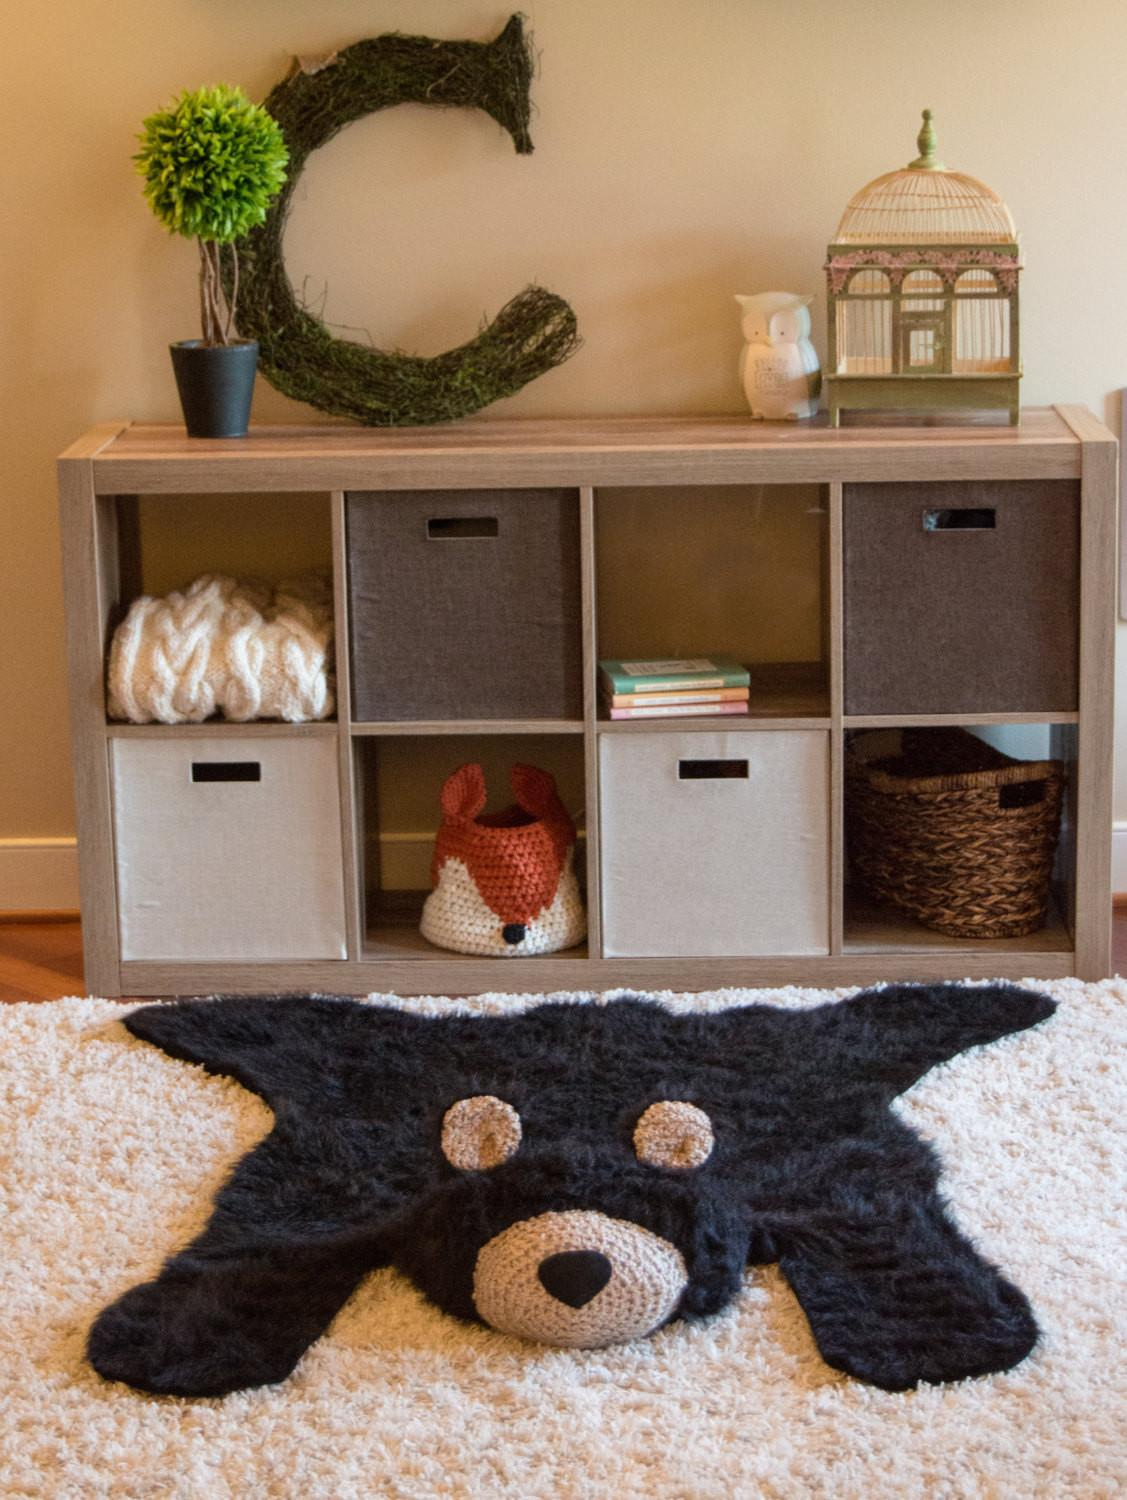 Black Bear Rug Faux Woodland Nursery Baby Room